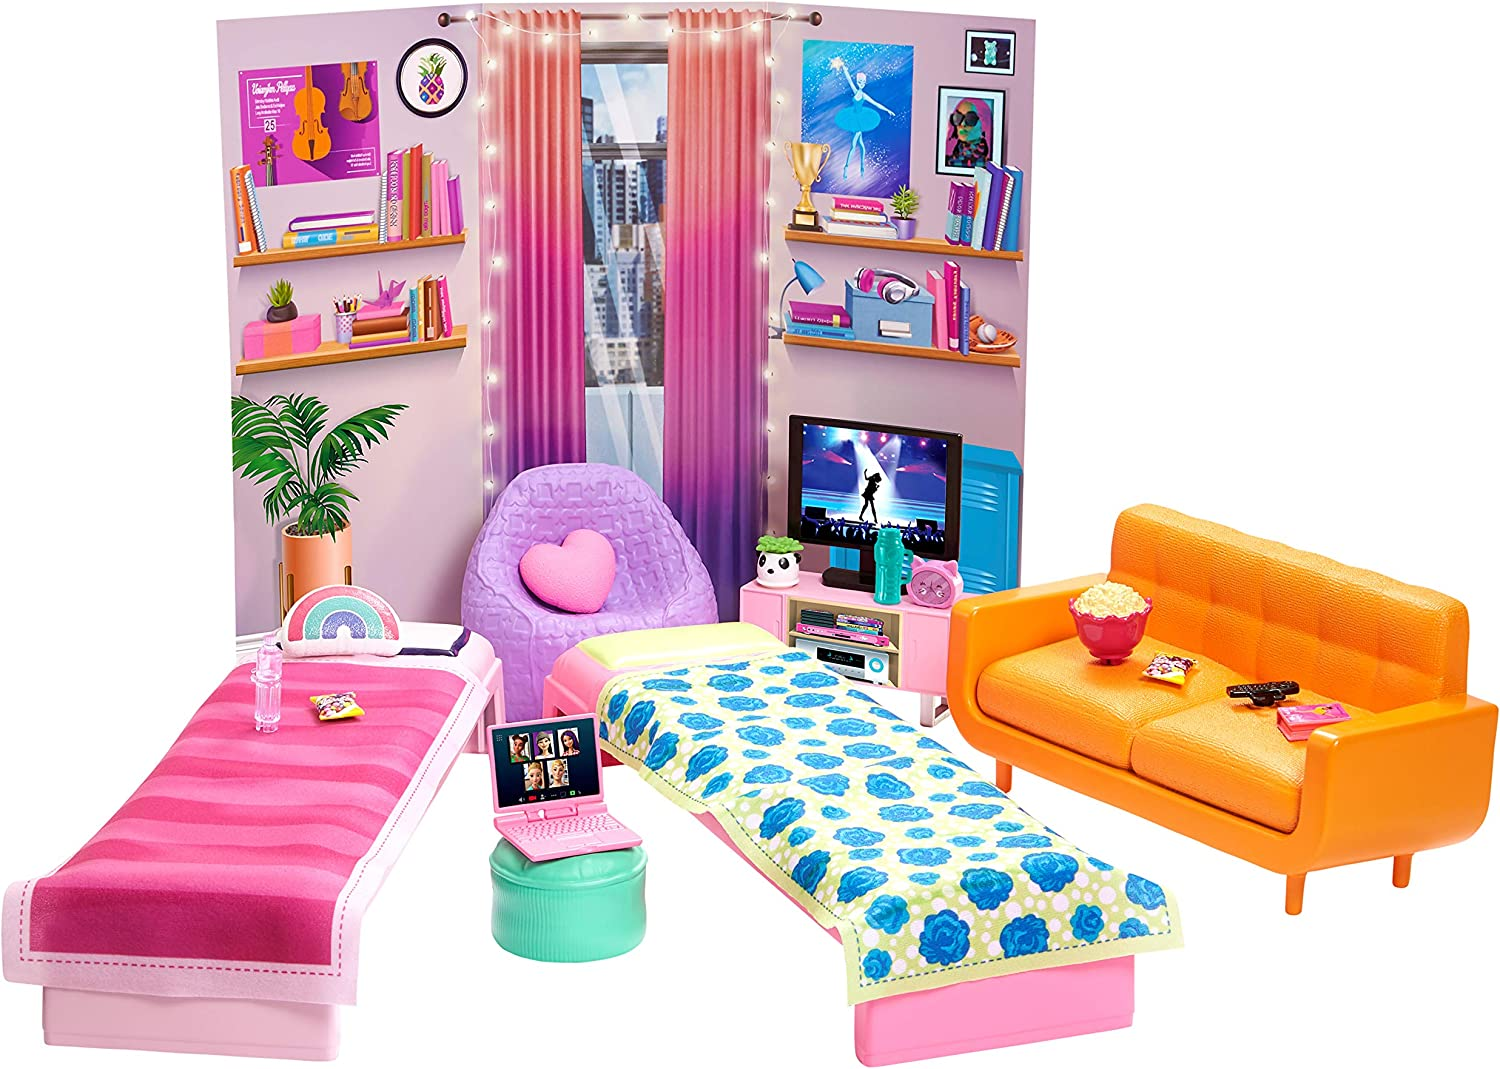 Buy Barbie Big City Big Dreams Dorm Room Playset With 2 Beds Couch Bean Bag Chair Bedroom Furniture Decor Accessories Gift For 3 To 7 Year Olds Online In Uk B08tztn6ly